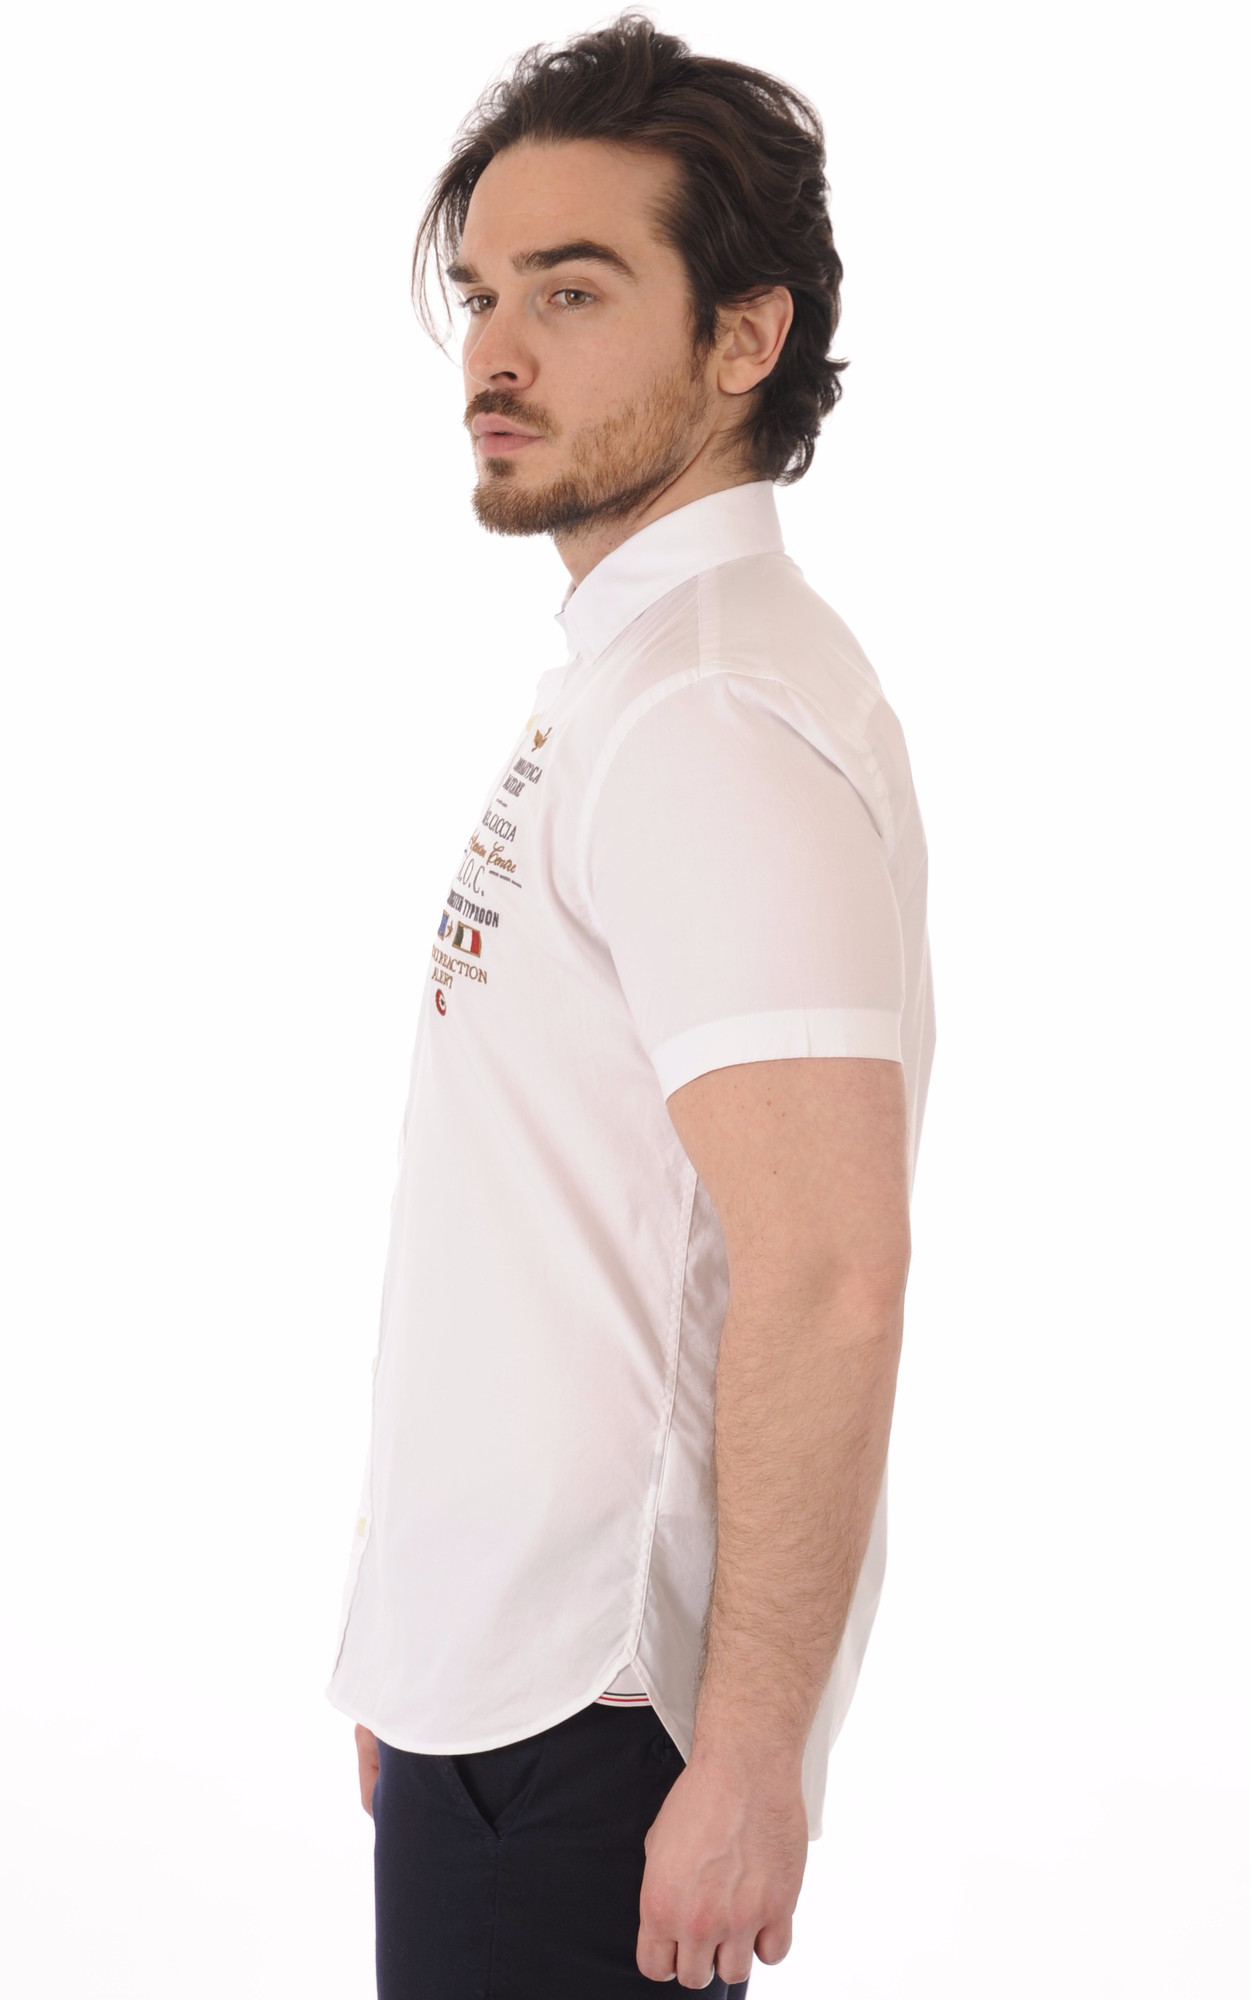 Chemise Blanche A.O.C Manches Courtes1